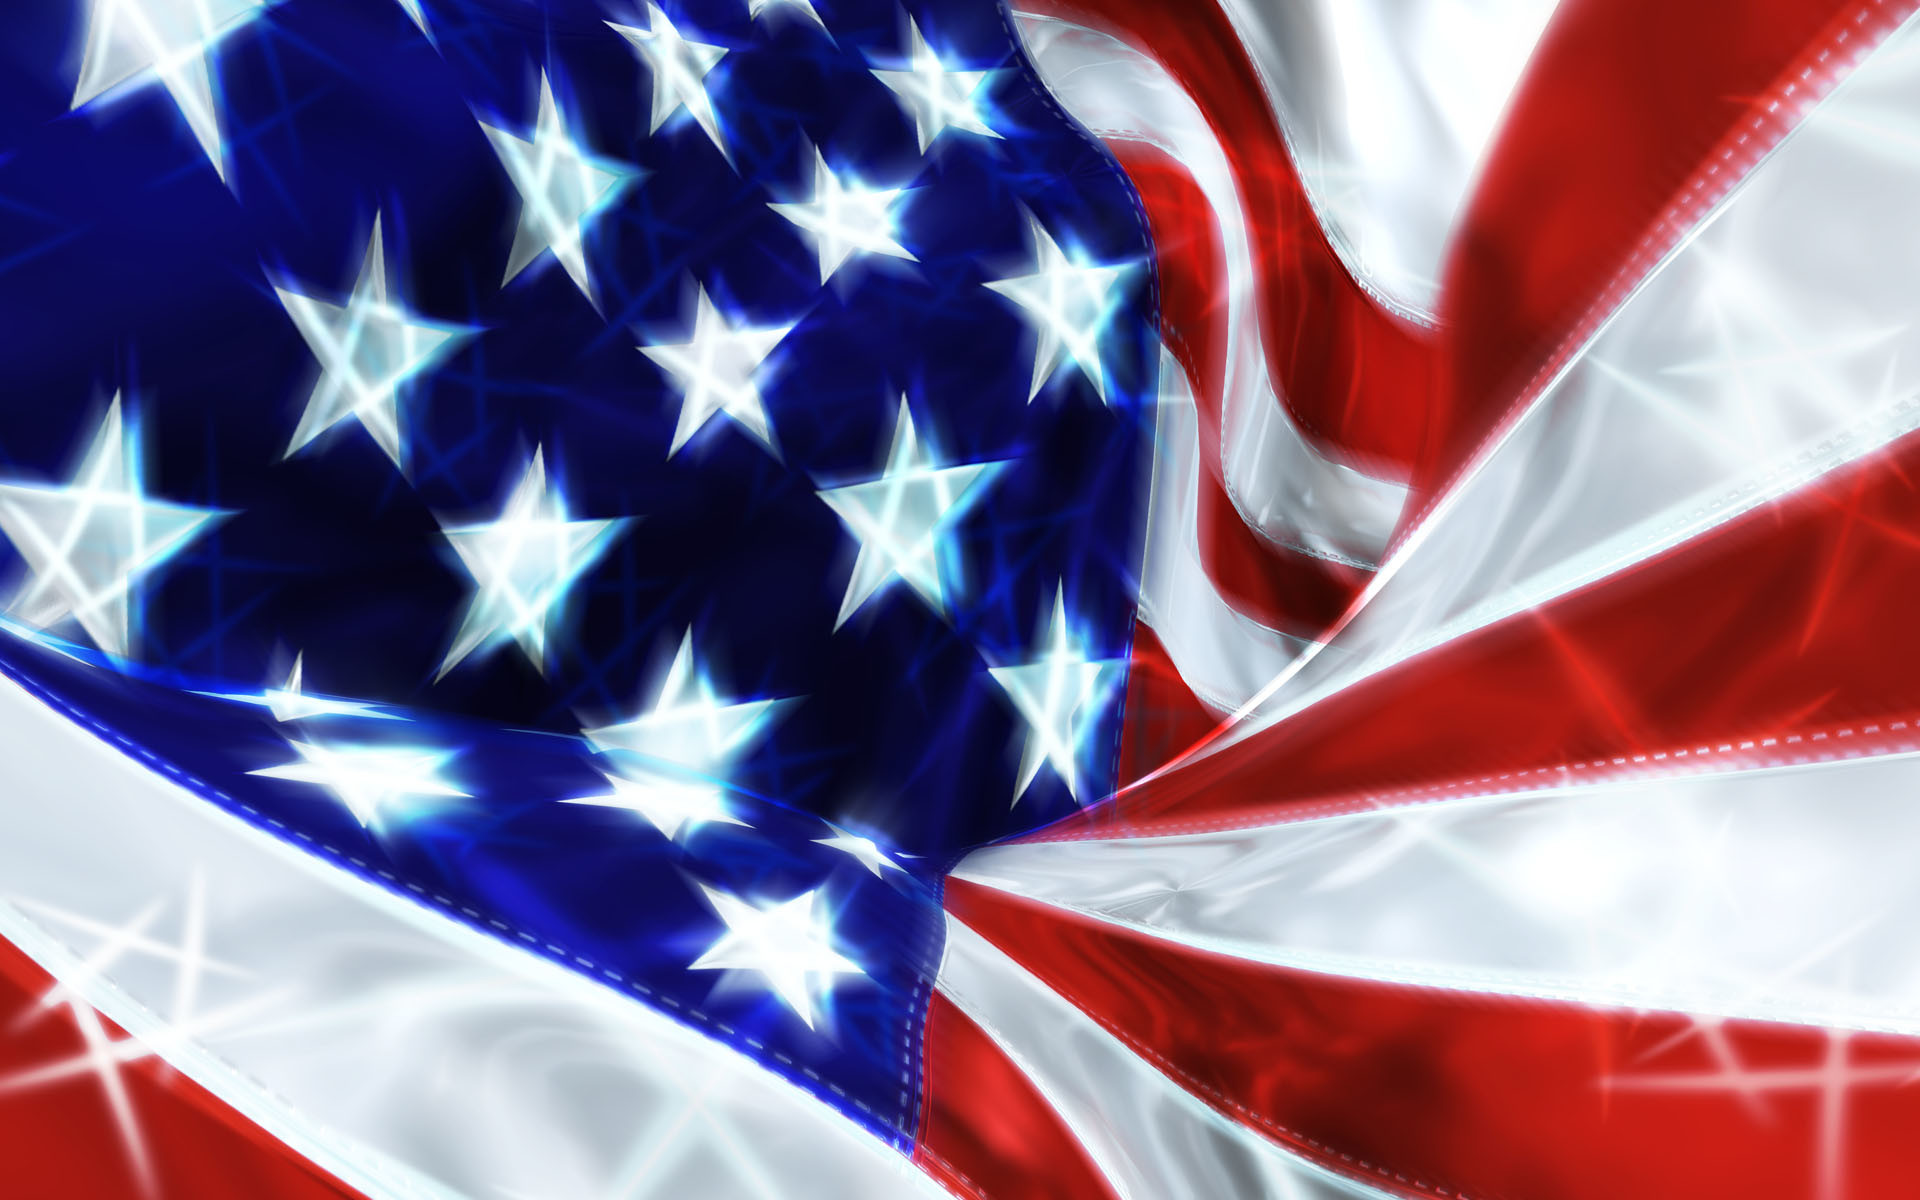 High Resolution American Flag Wallpapers, Quintina Costan